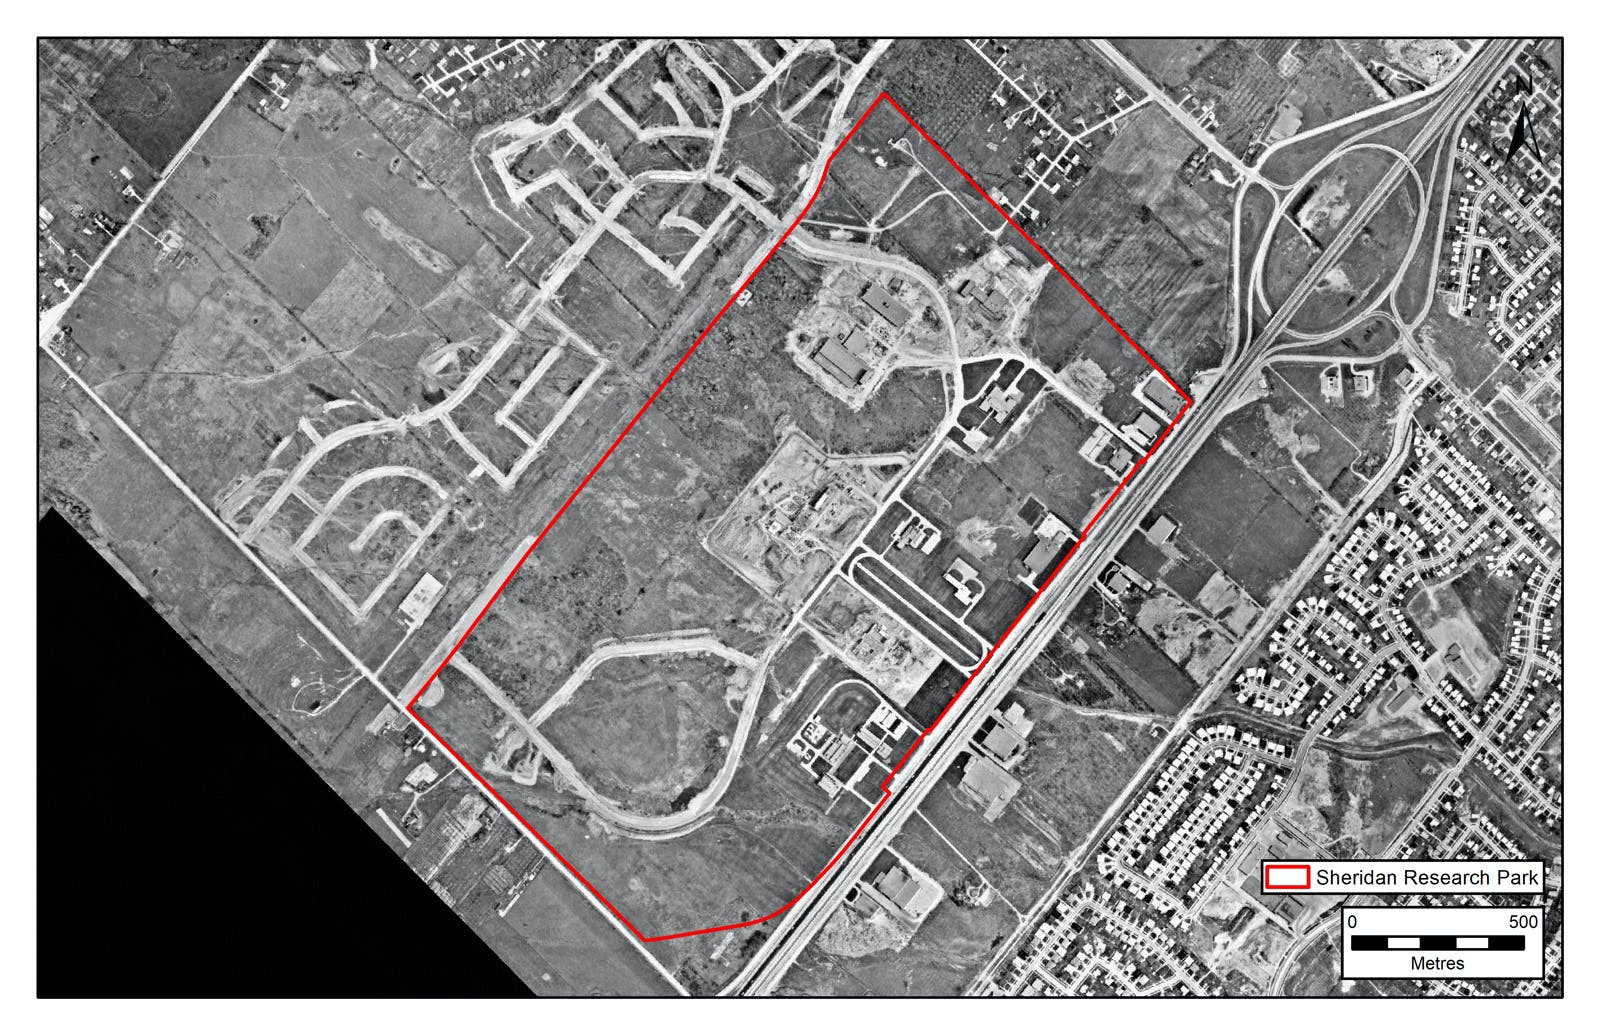 Early development of Sheridan Park, 1966 aerial photograph